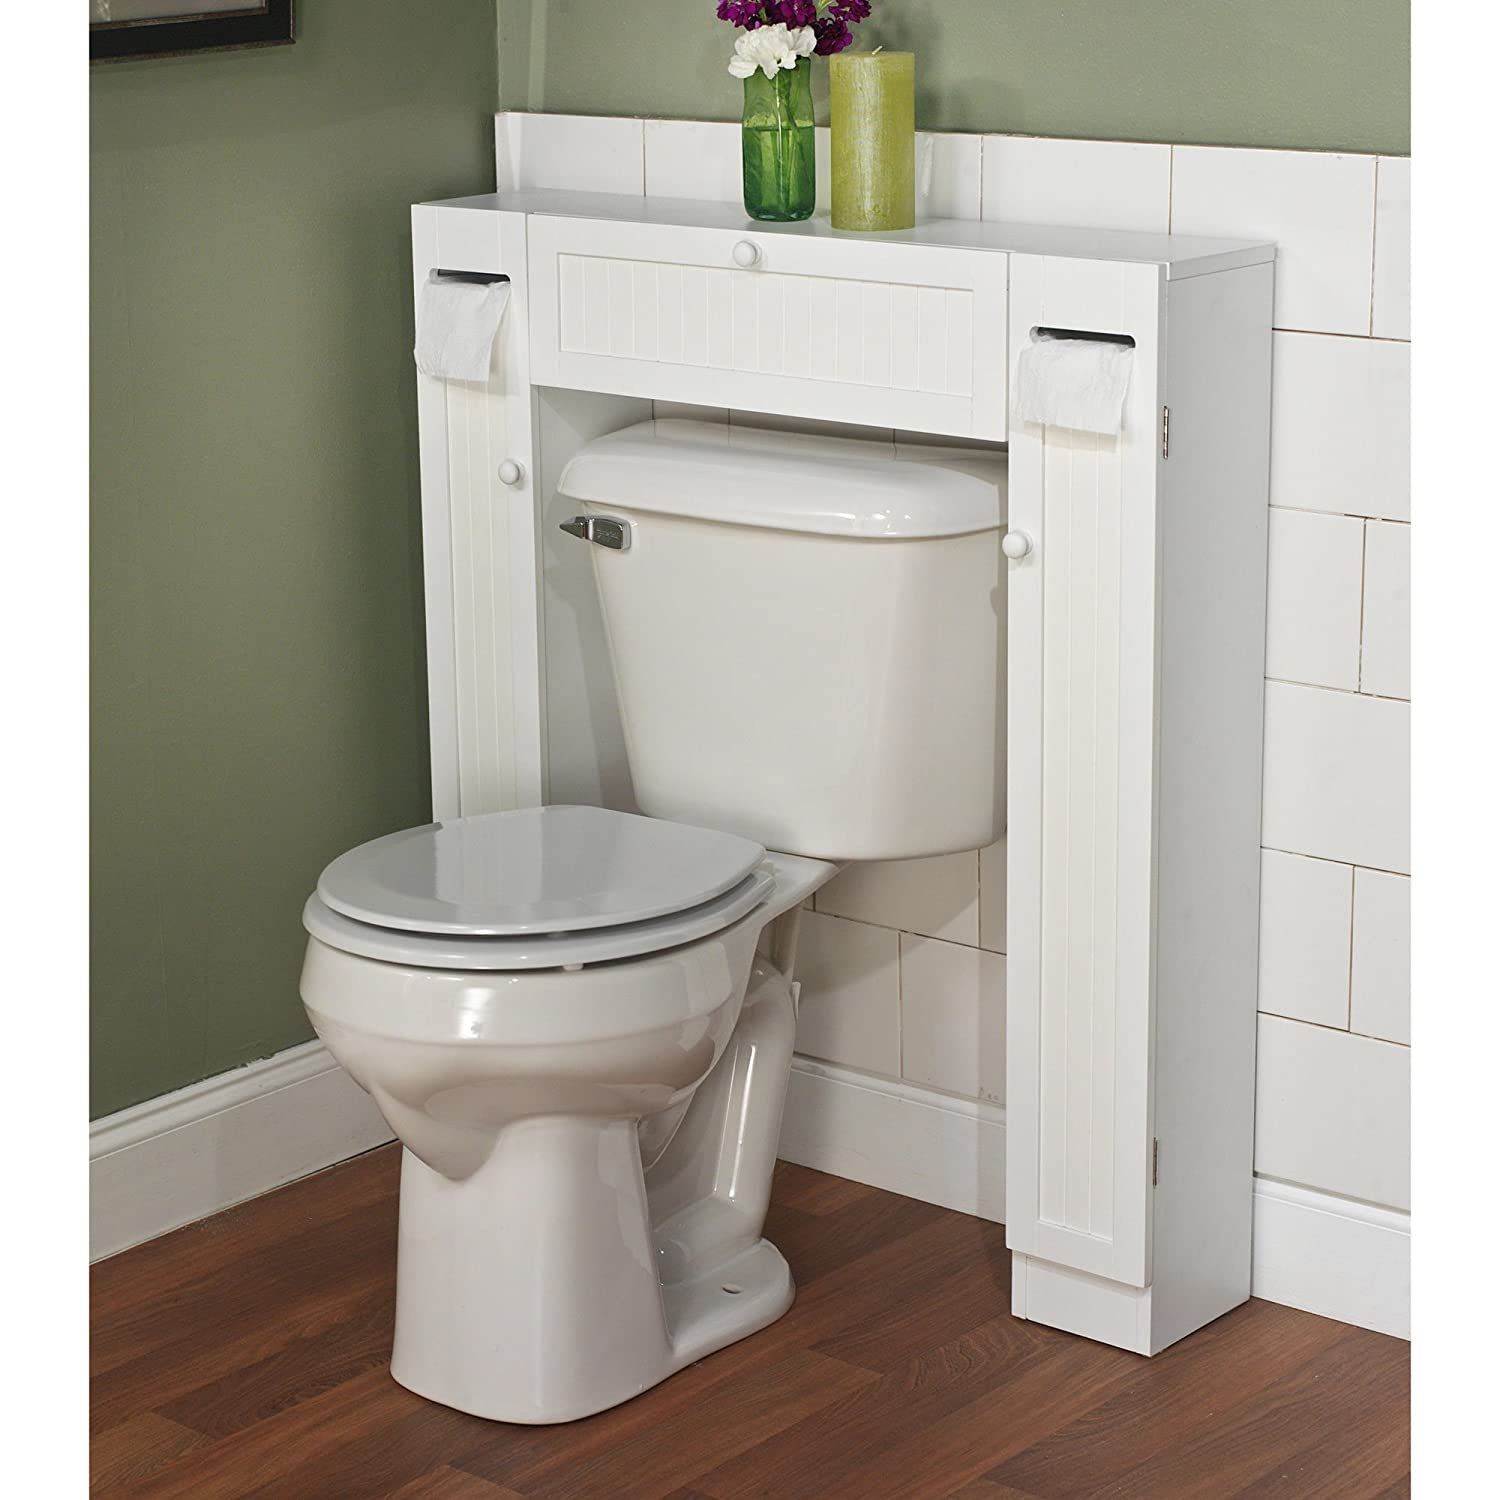 over the toilet space saver by simple living 1 center cabinet and 2 side cabinets in white wood material gives extra storage for every bathroom - Bathroom Cabinets Space Saver